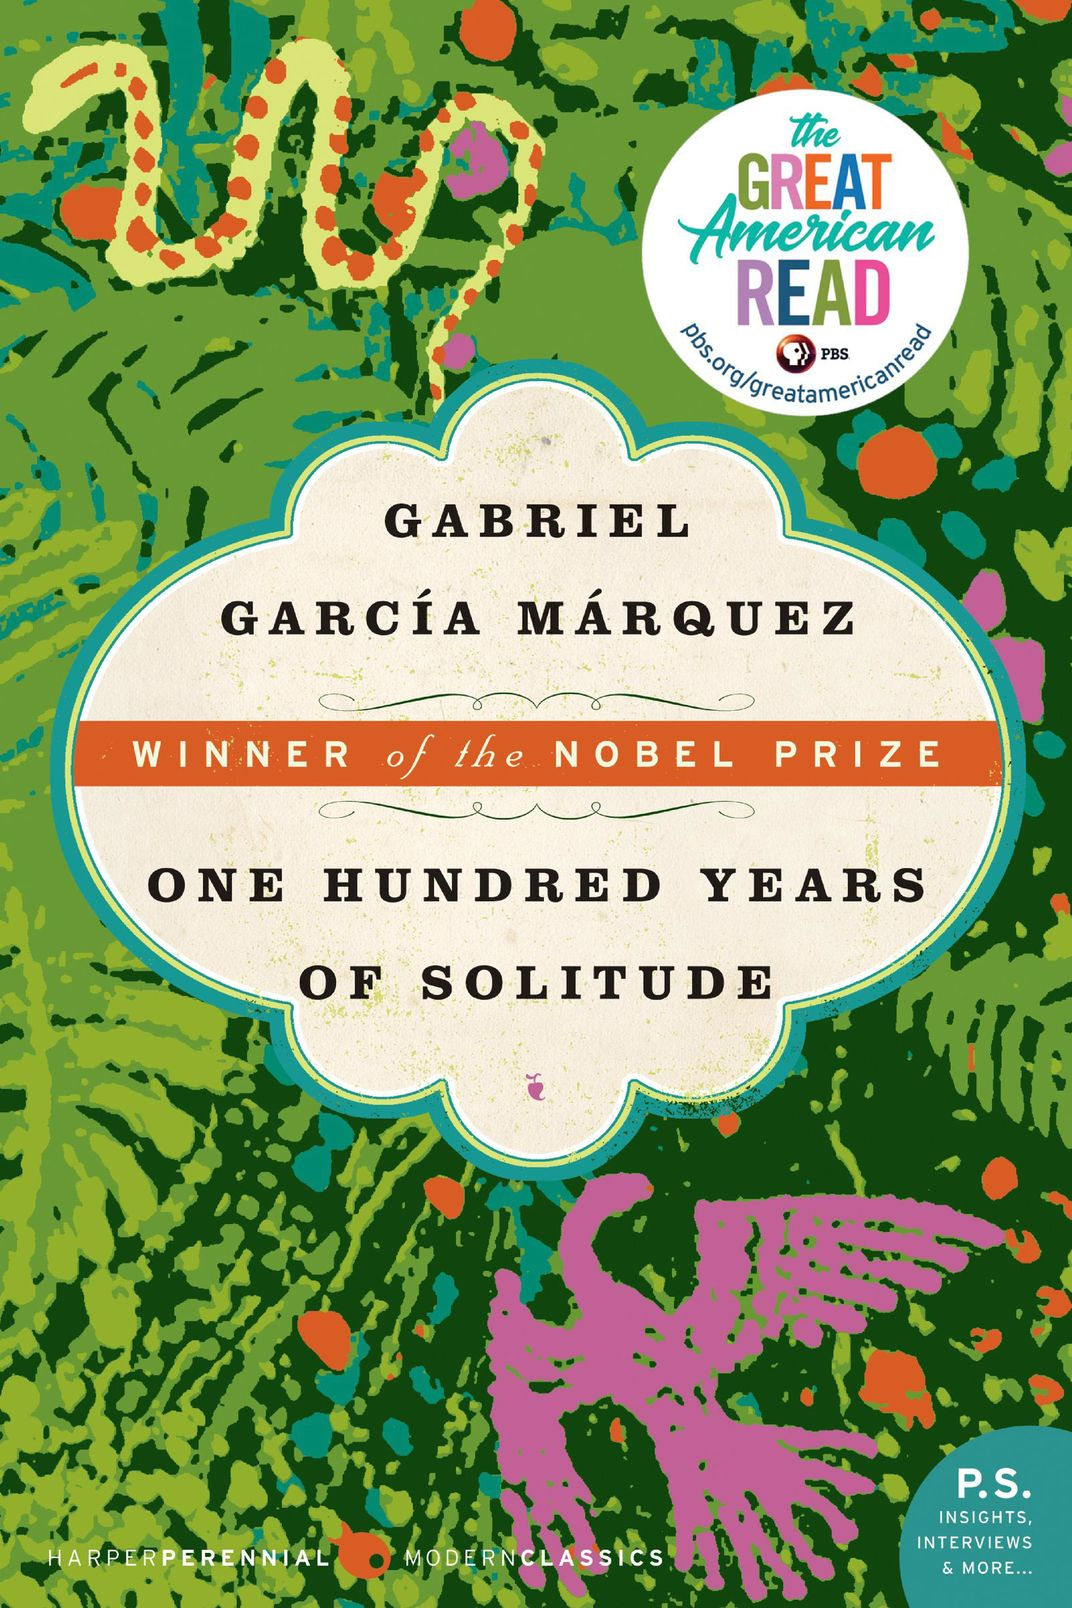 One Hundred Years of Solitude, by Gabriel Garcia Márquez